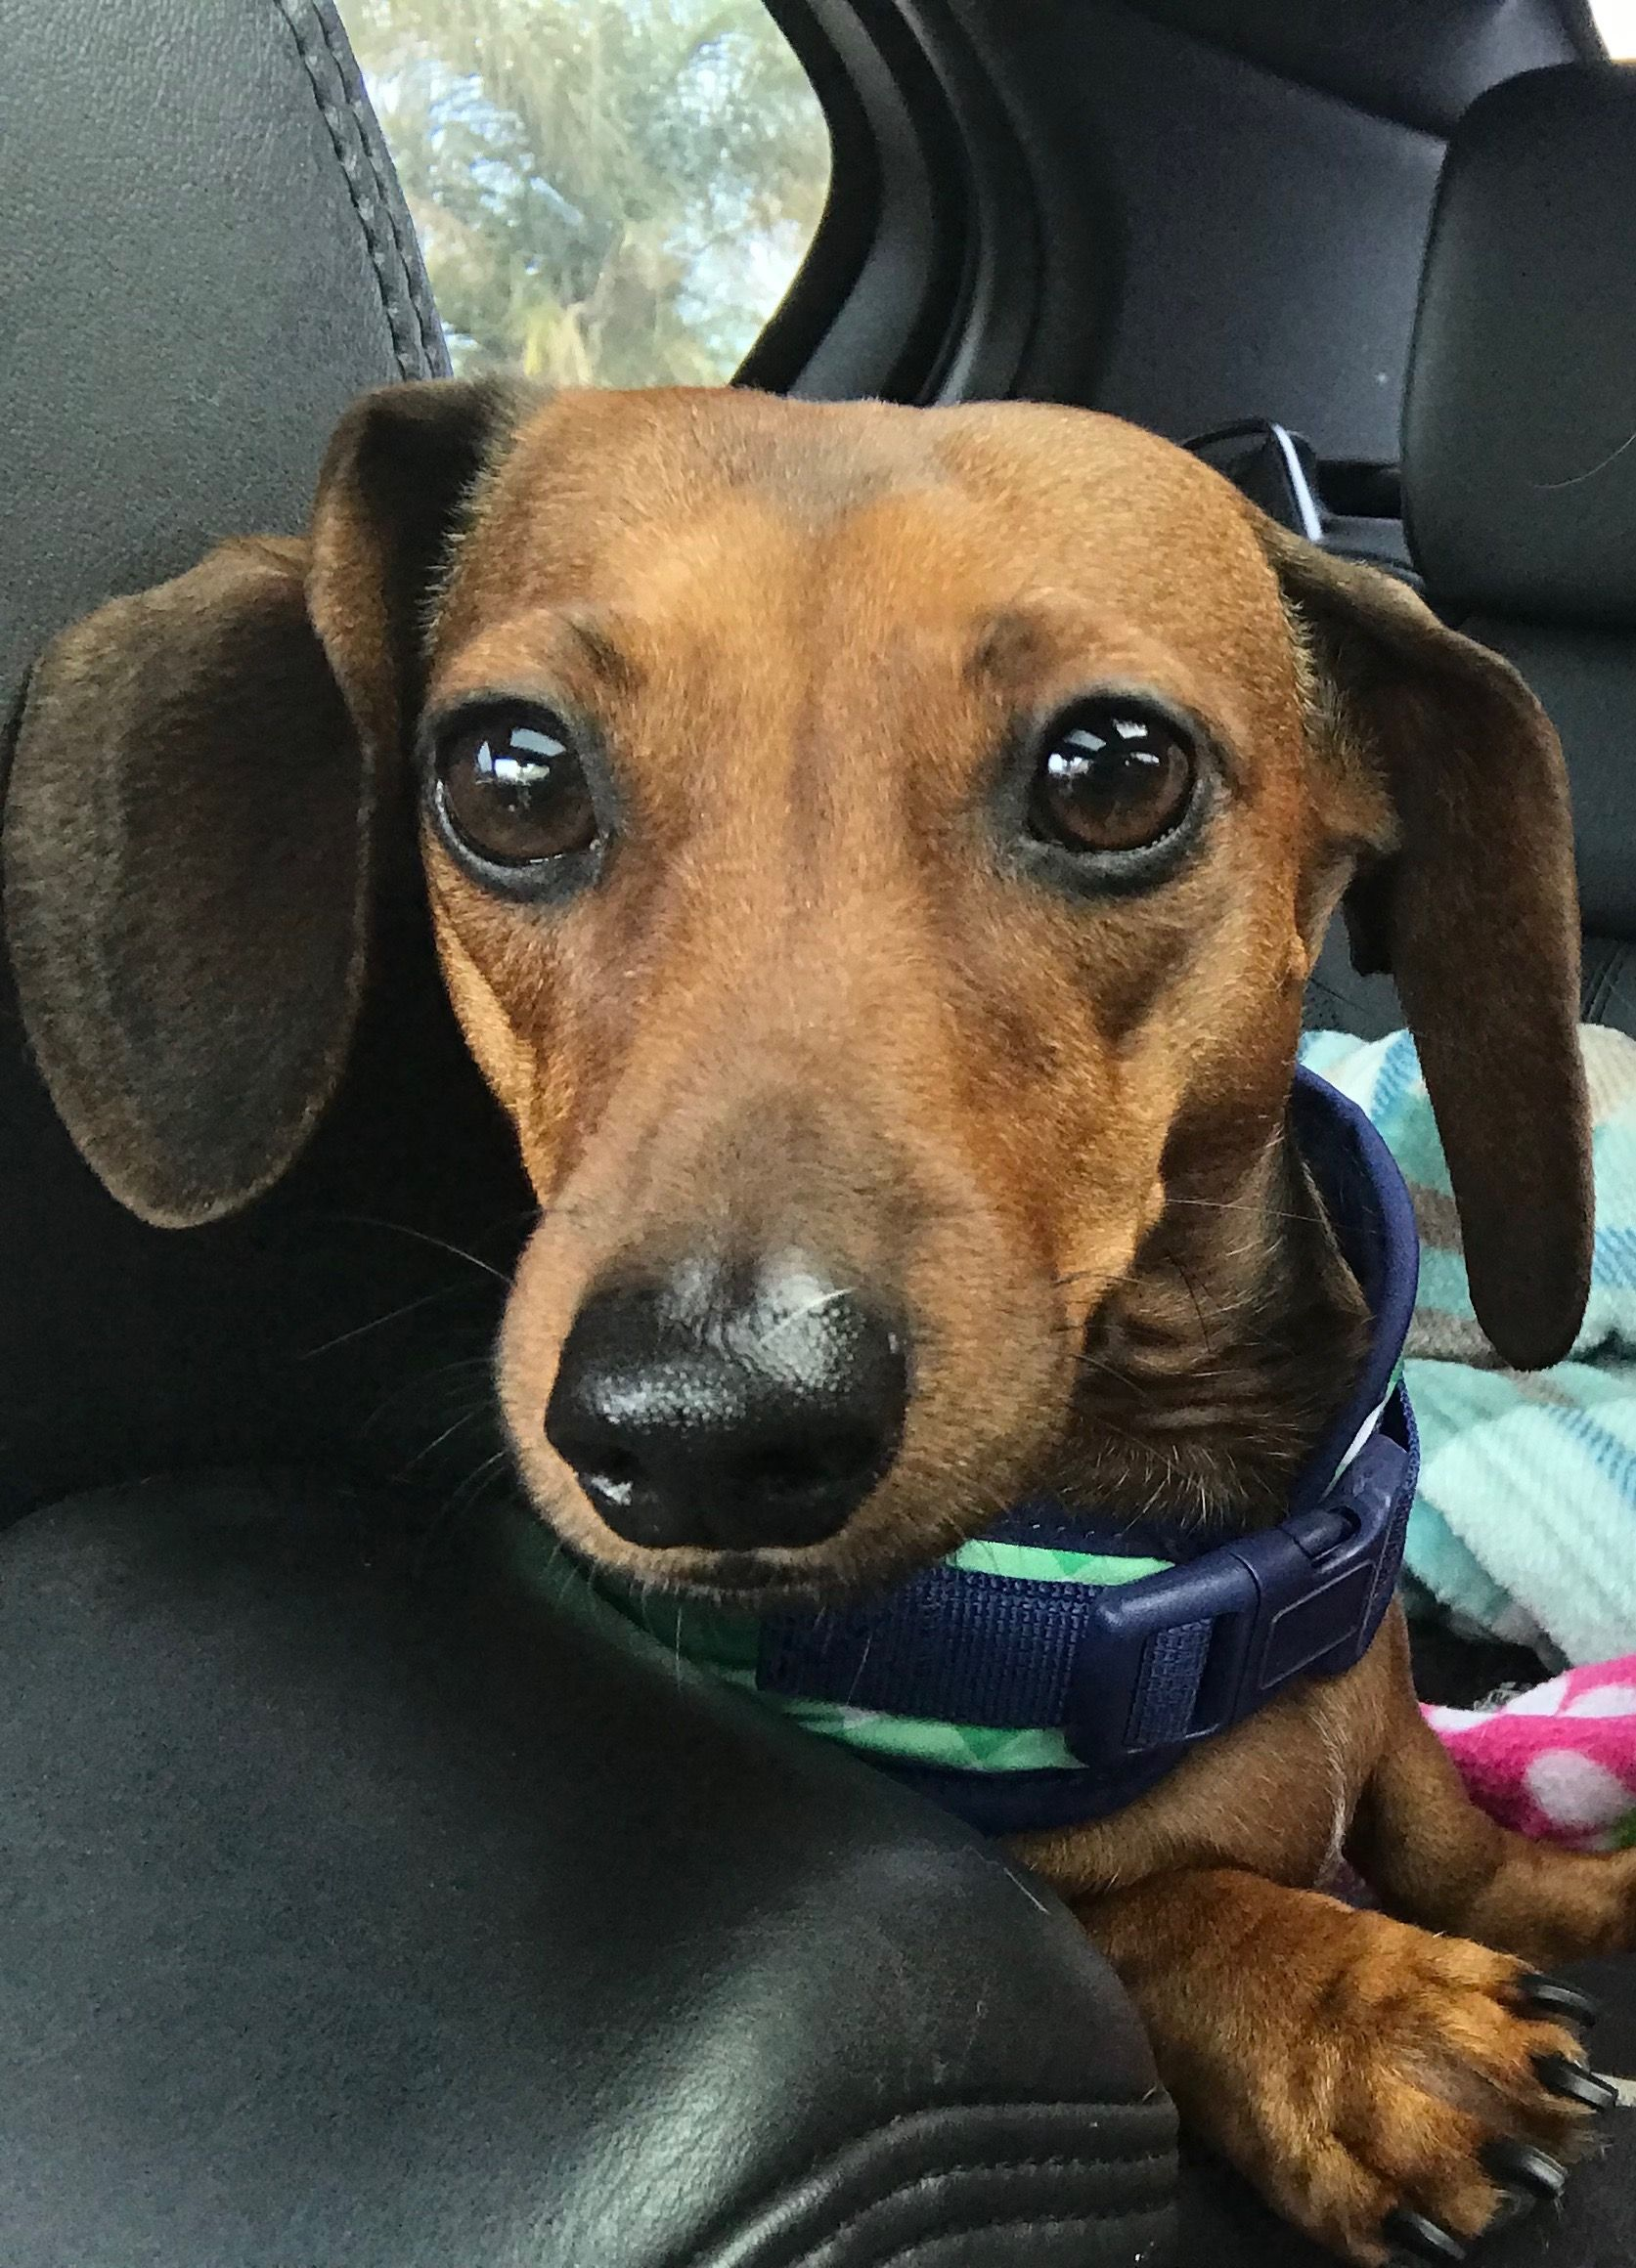 Hey Dad Petsmart Is Right Up There So Don T Pass It Because I Have Some Money To Spend On One Of My Favorite Weenie Dogs Weiner Dog Dachshund Puppies